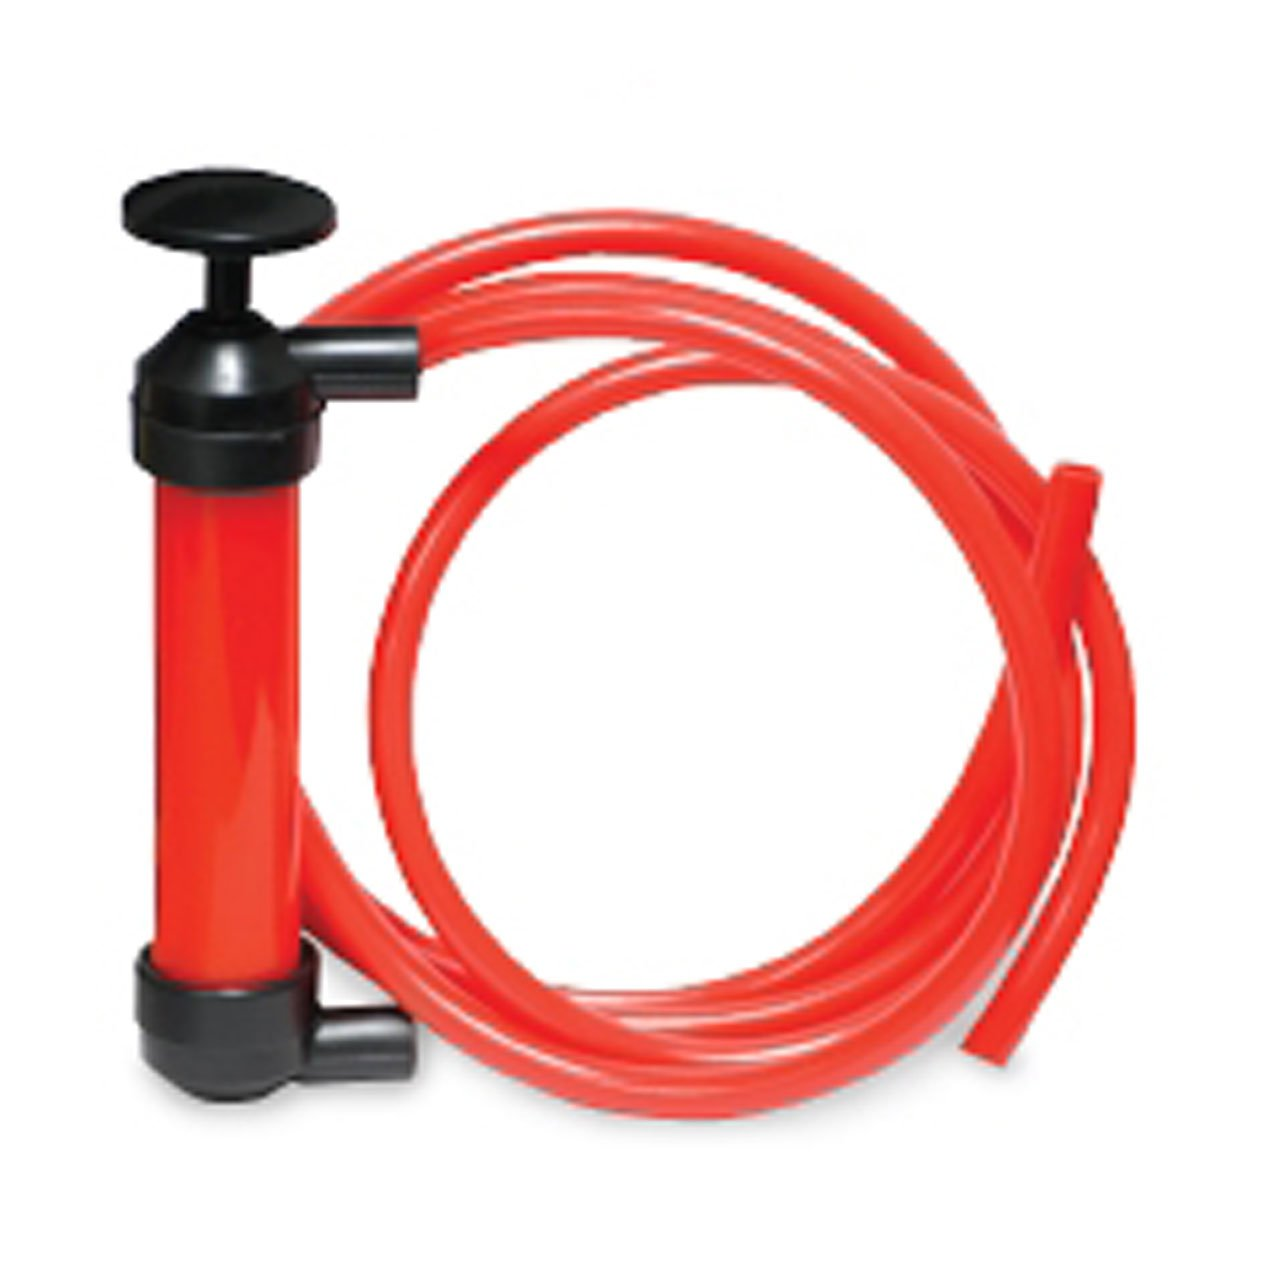 King Innovation 48050 Siphon Junior Mini Pump with 50-Inch Hose